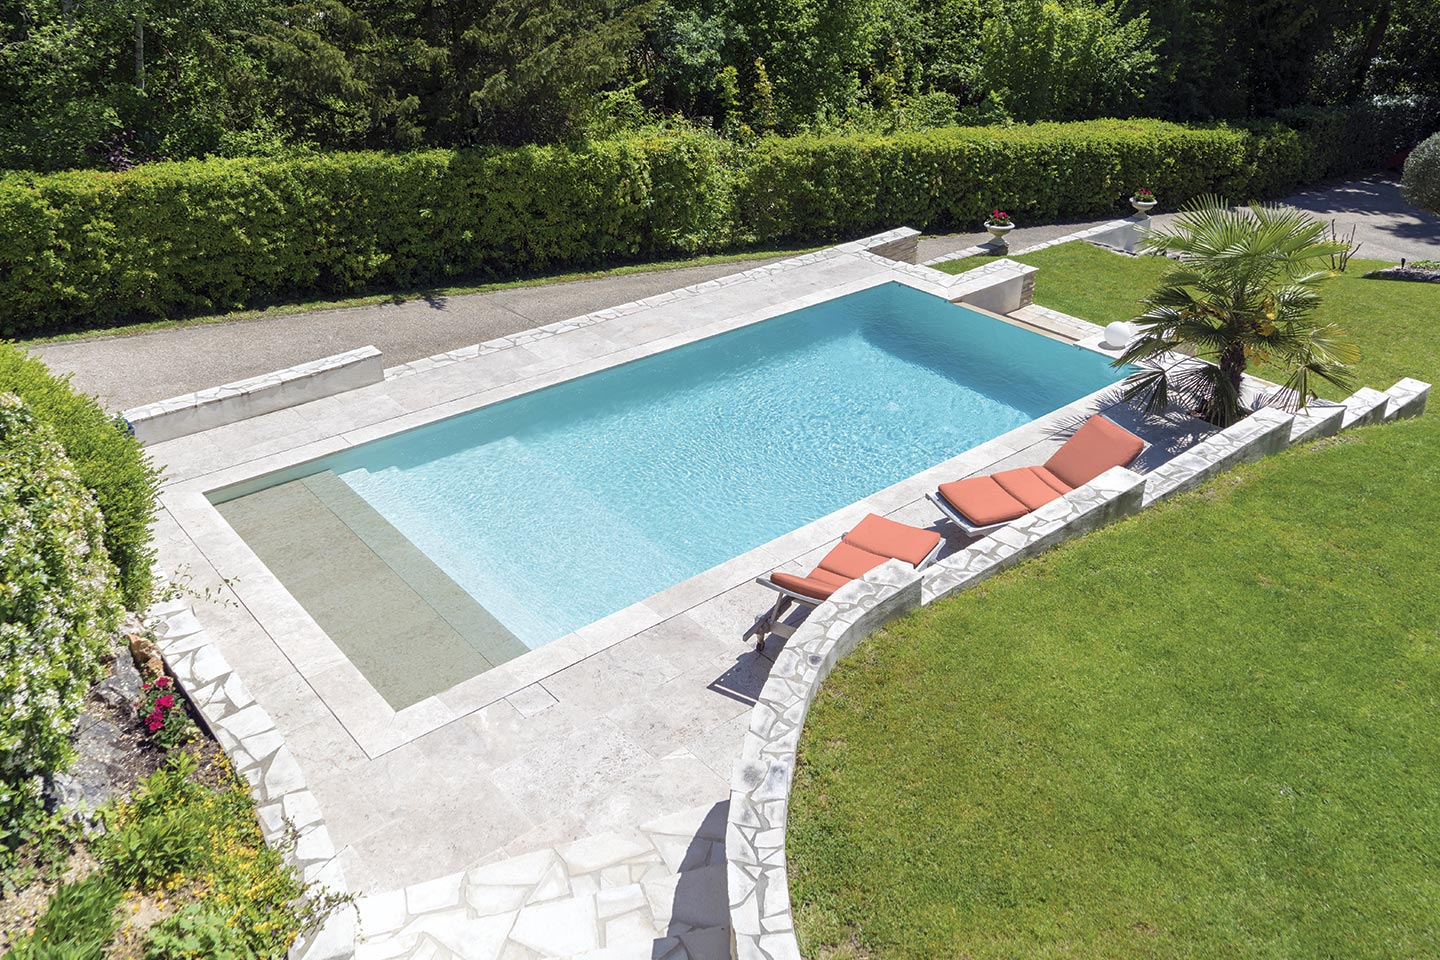 piscine-rectangle-Diffazur-2019-galerie-photos-5